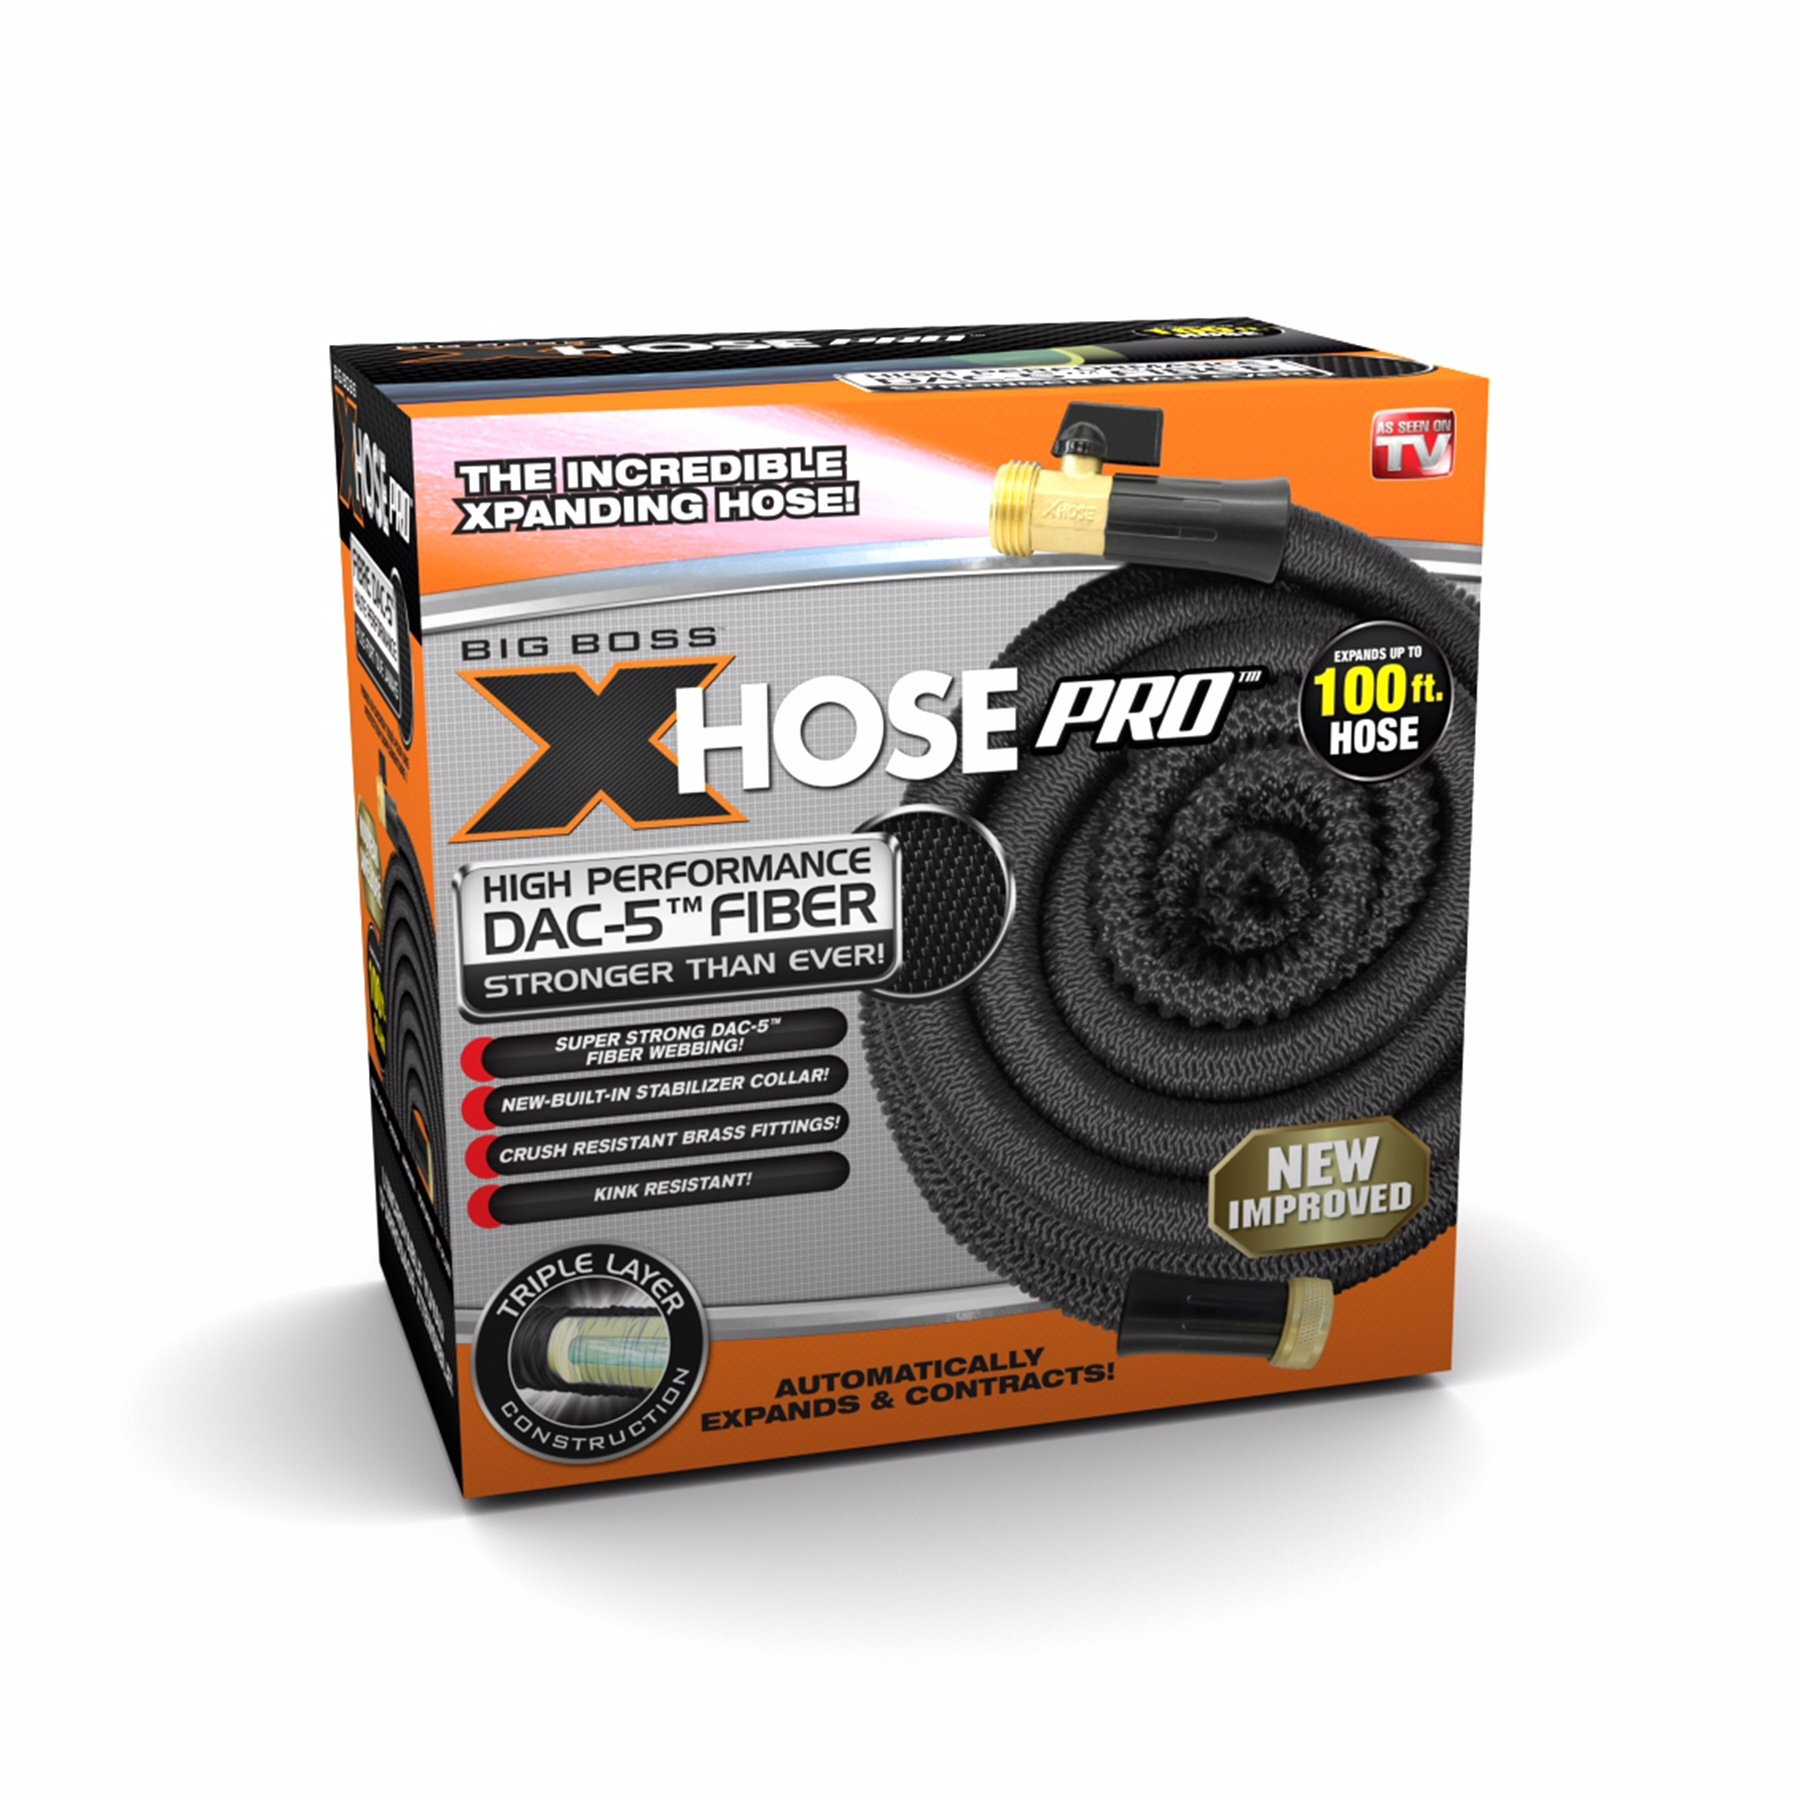 Xhose Pro DAC-5 High Performance Lightweight Expandable Garden Hose with Brass Fittings (100 Feet) by Xhose